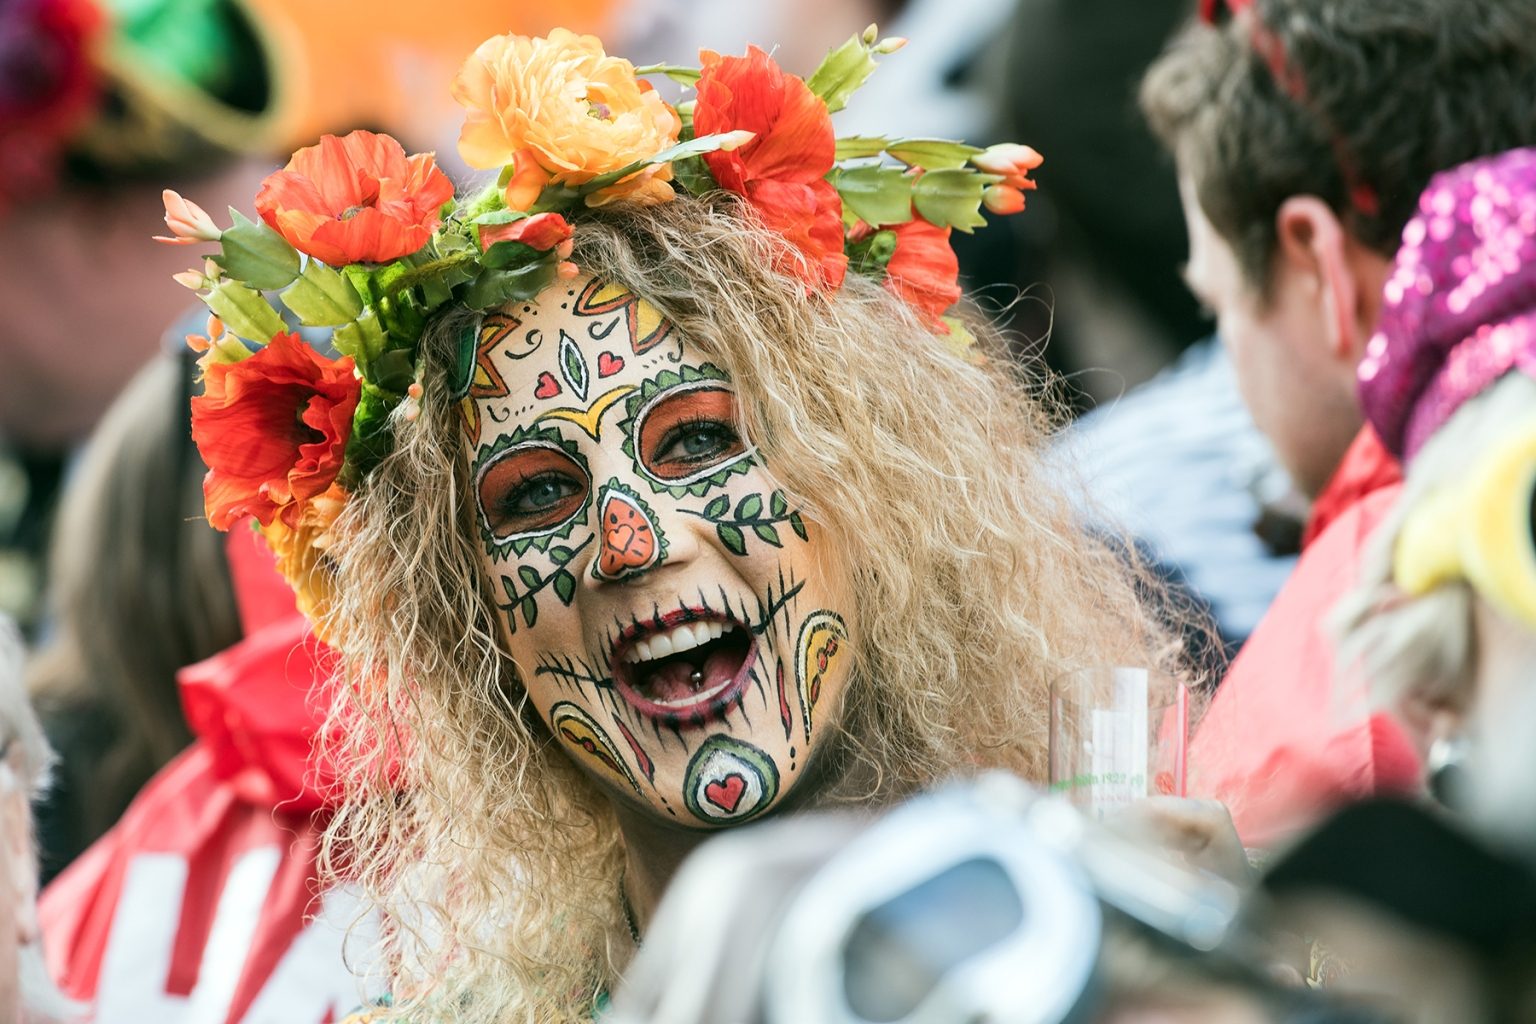 People celebrate the start of the hot carnival season at the Women's Carnival in Cologne, Germany, on Feb. 28. FEDERICO GAMBARINI/AFP/Getty Images